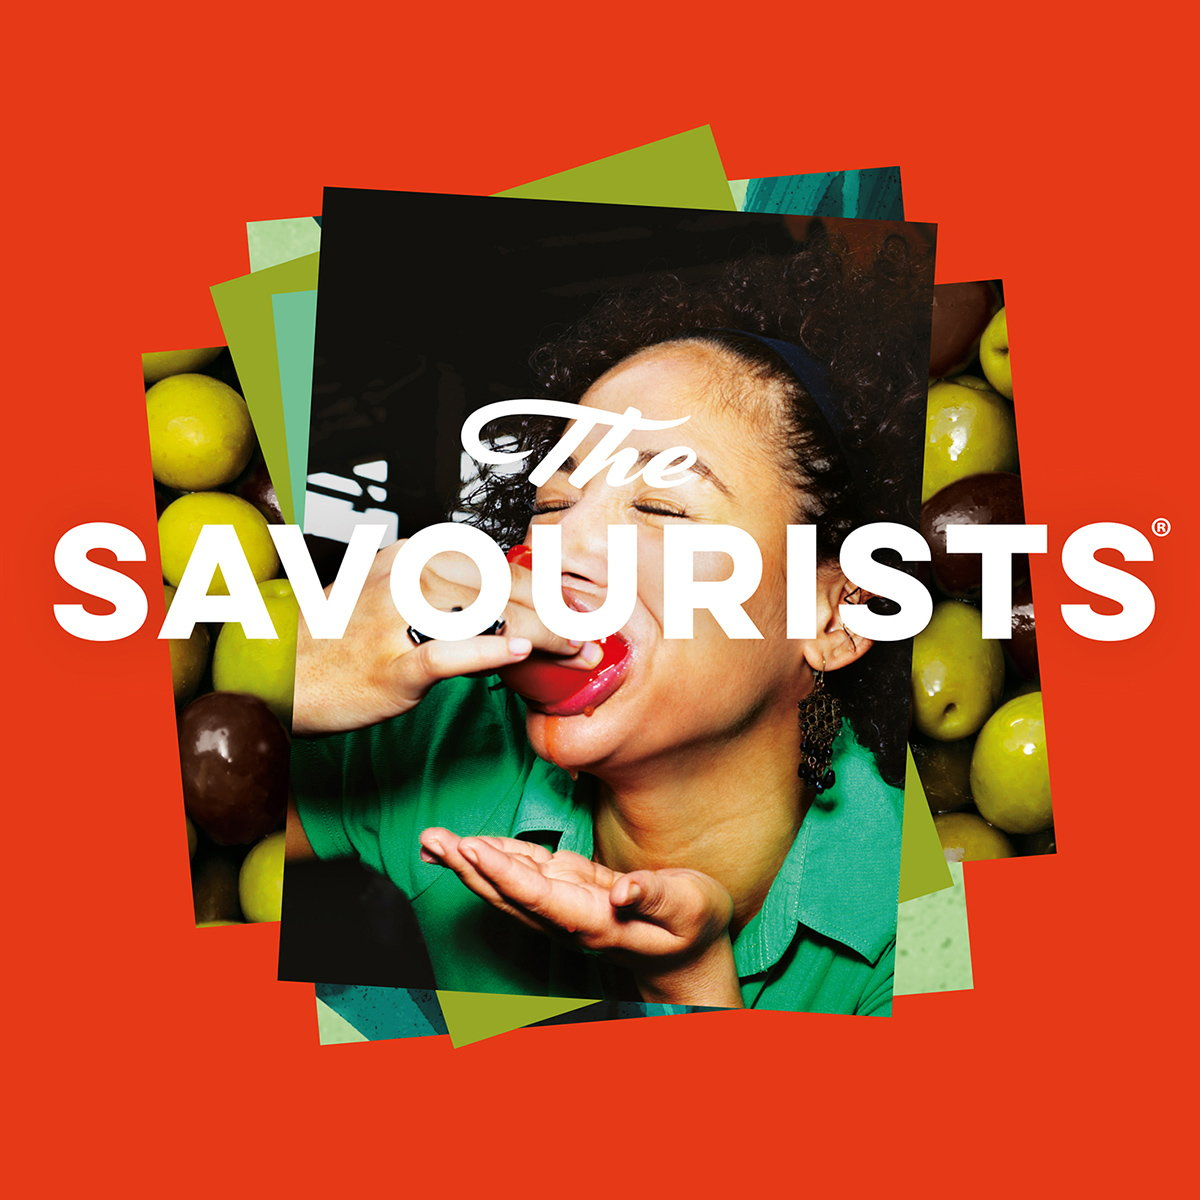 B&B Designs New Identity for Savoury Snack Bar, The Savourists